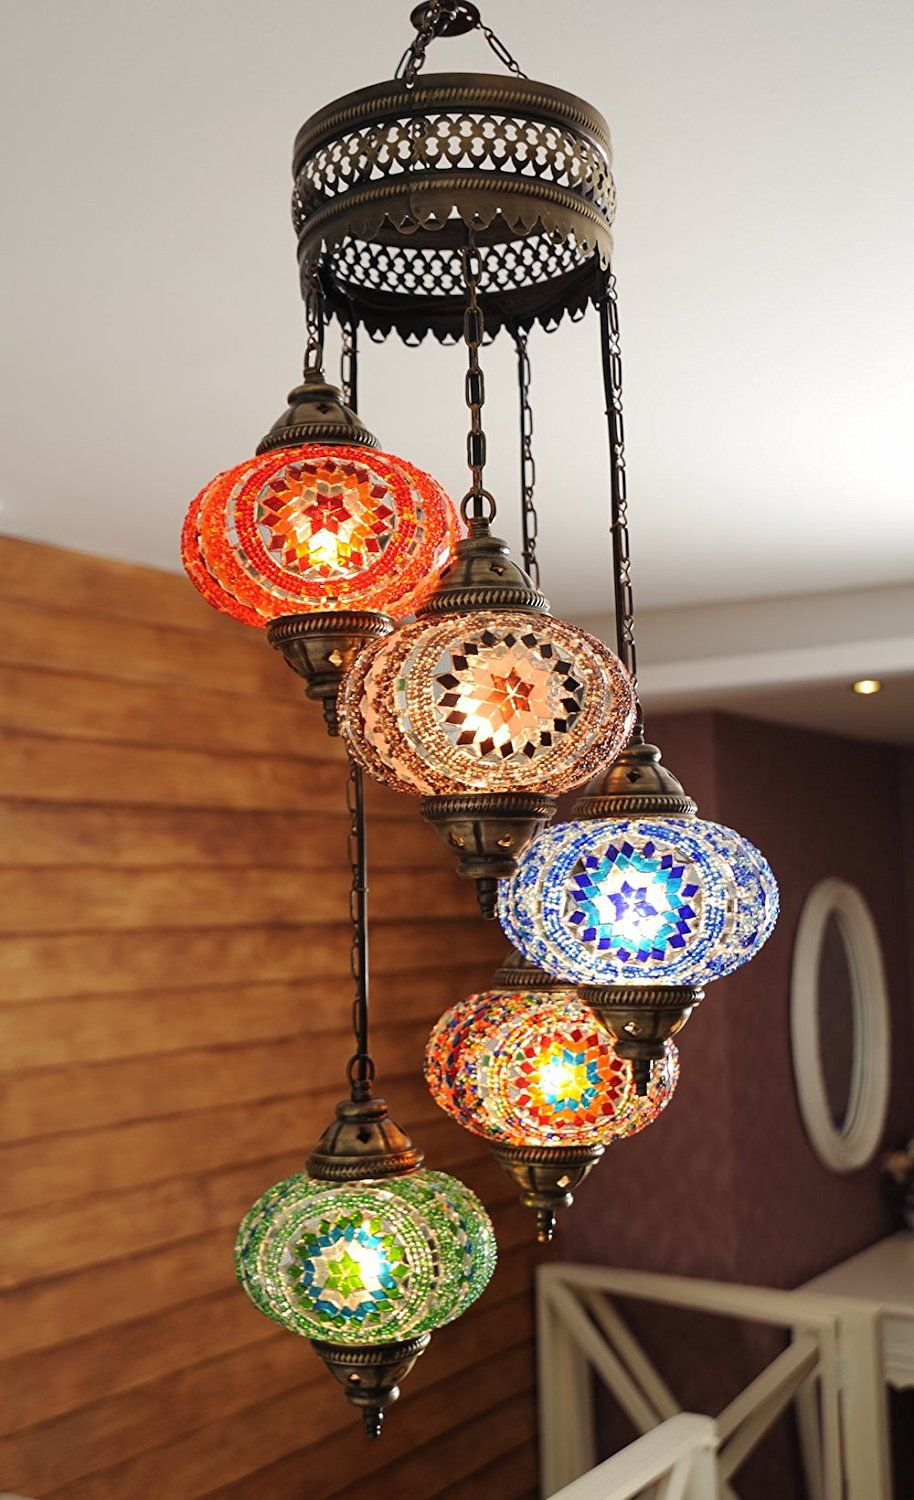 Moroccan style chandelier lantern lamp homedecor moroccan style chandelier lantern lamp homedecor homestyledecor chandelier boho bohemian aff lighting paradise pinterest group arubaitofo Choice Image